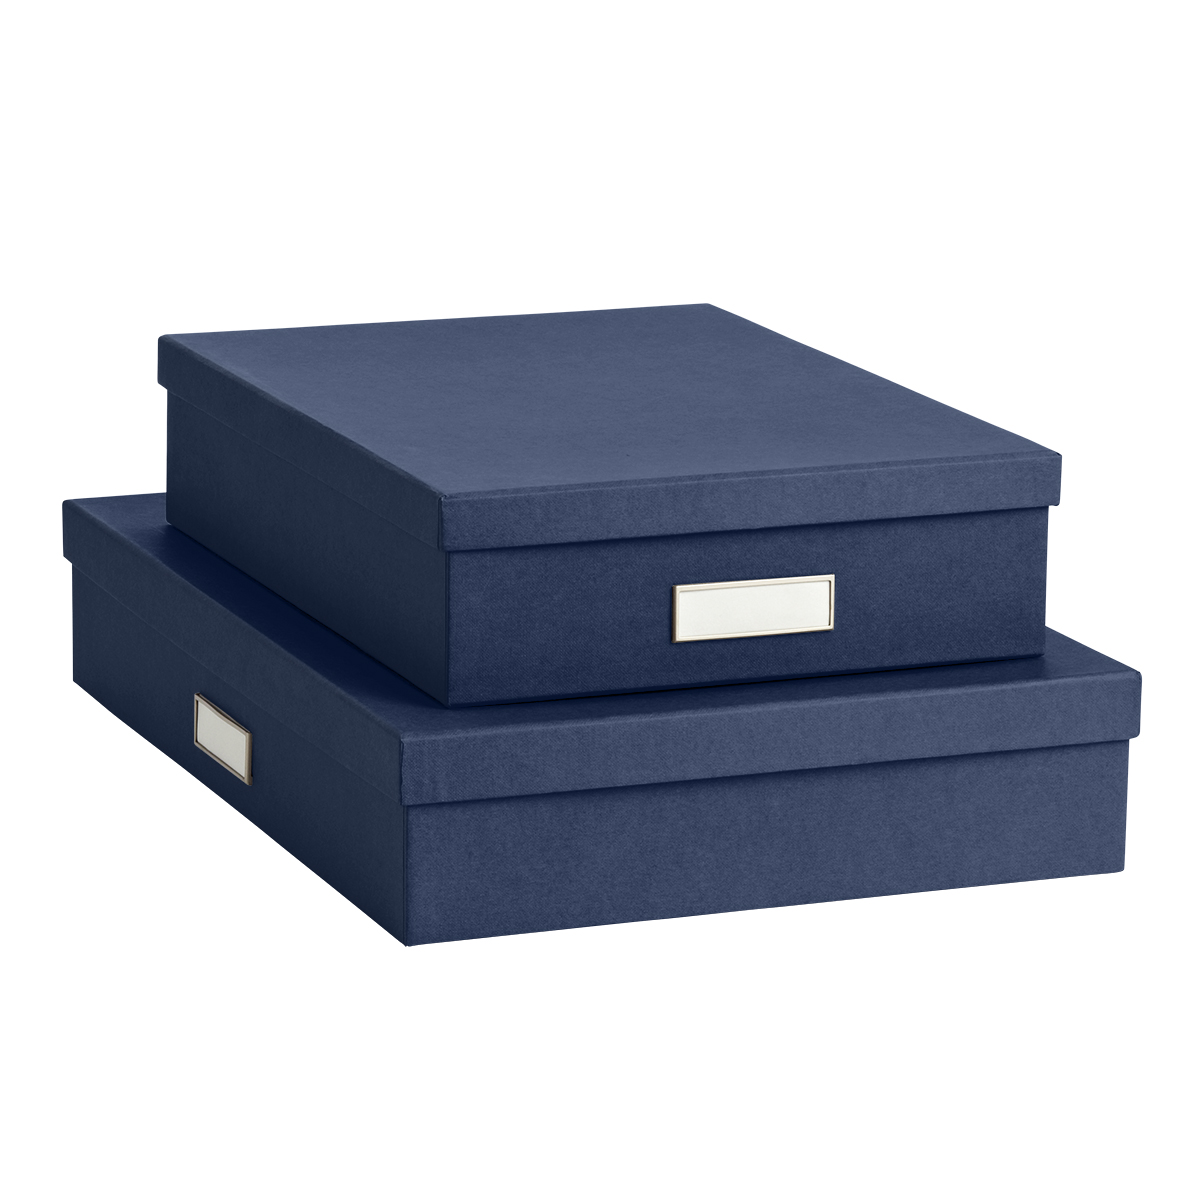 Classic Stockholm Office Storage Boxes ...